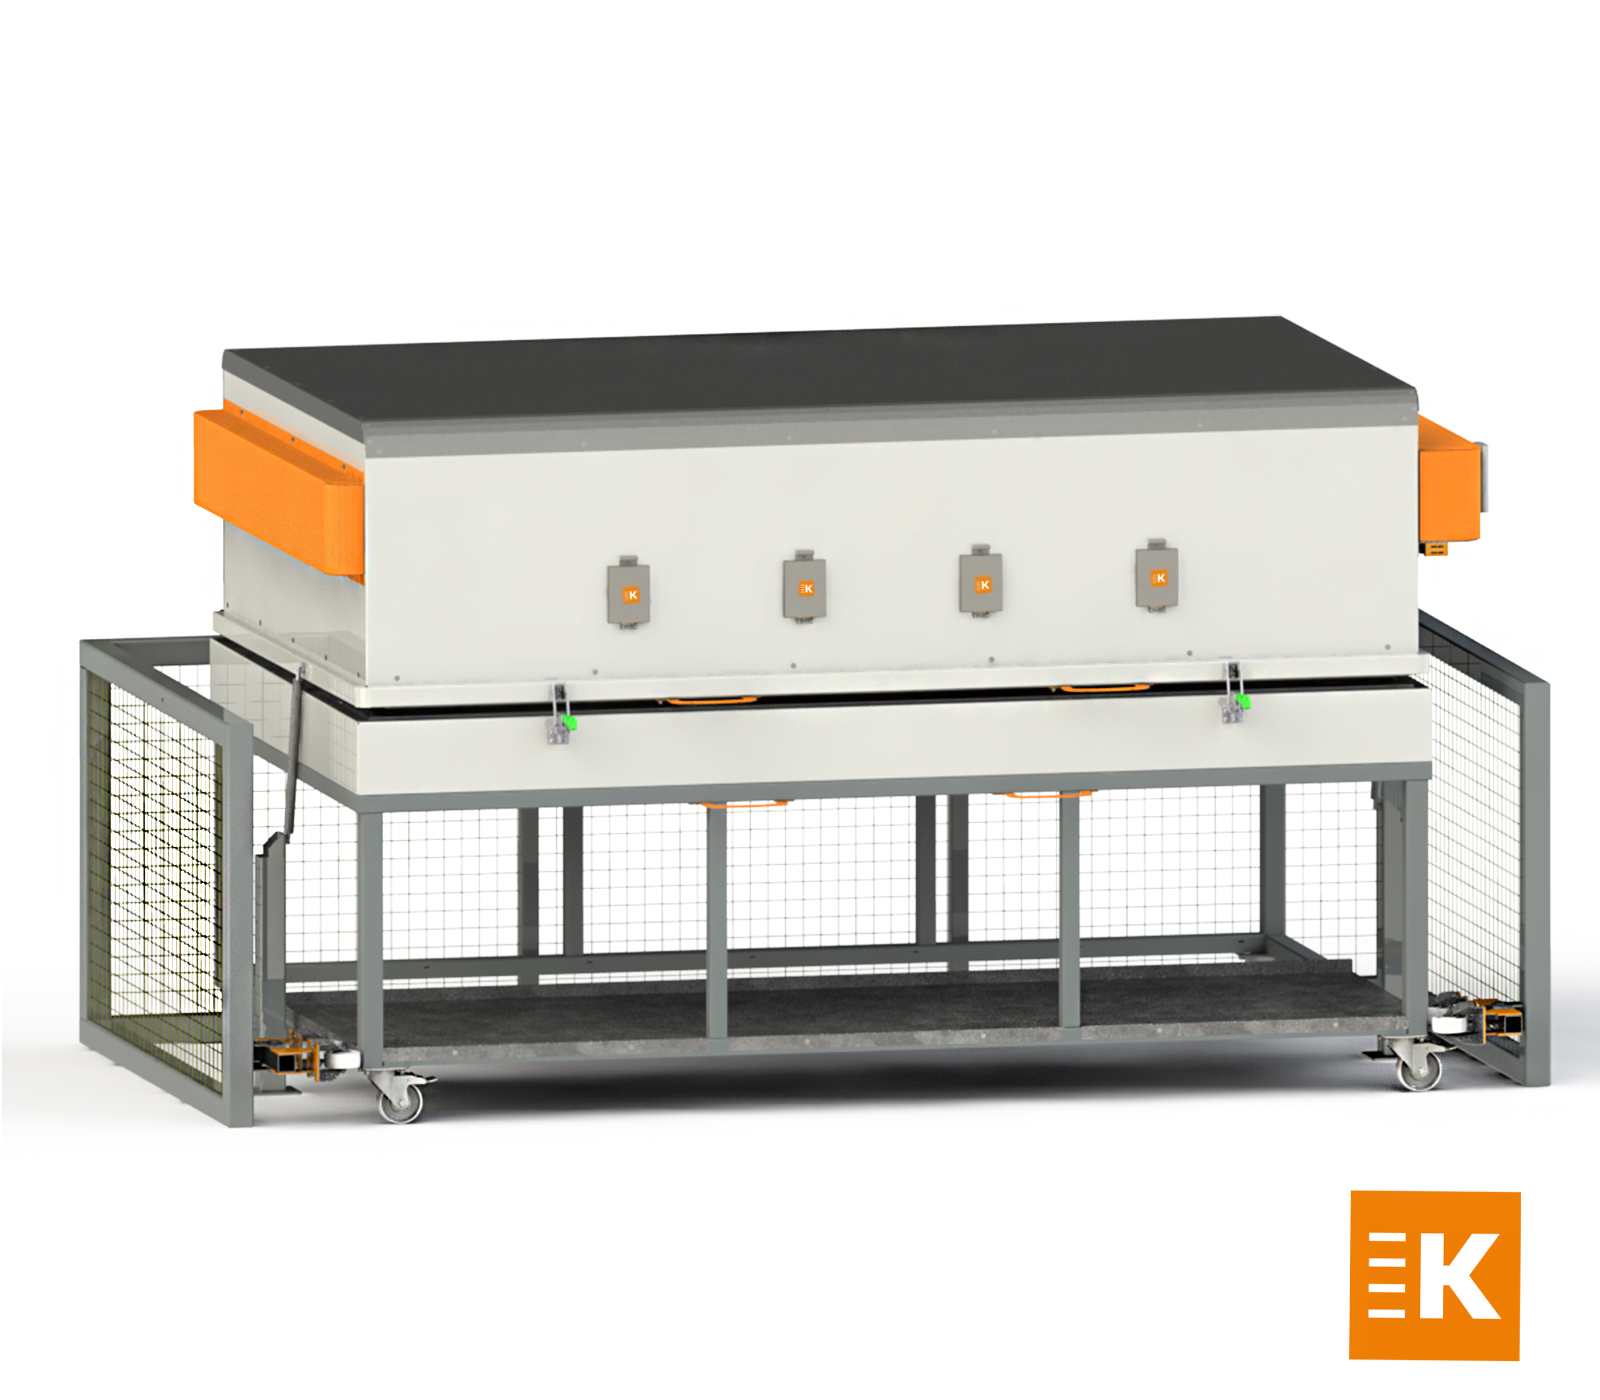 Chamber Furnace for Glass nad Fusing Kepka Heat Treatment Solutions